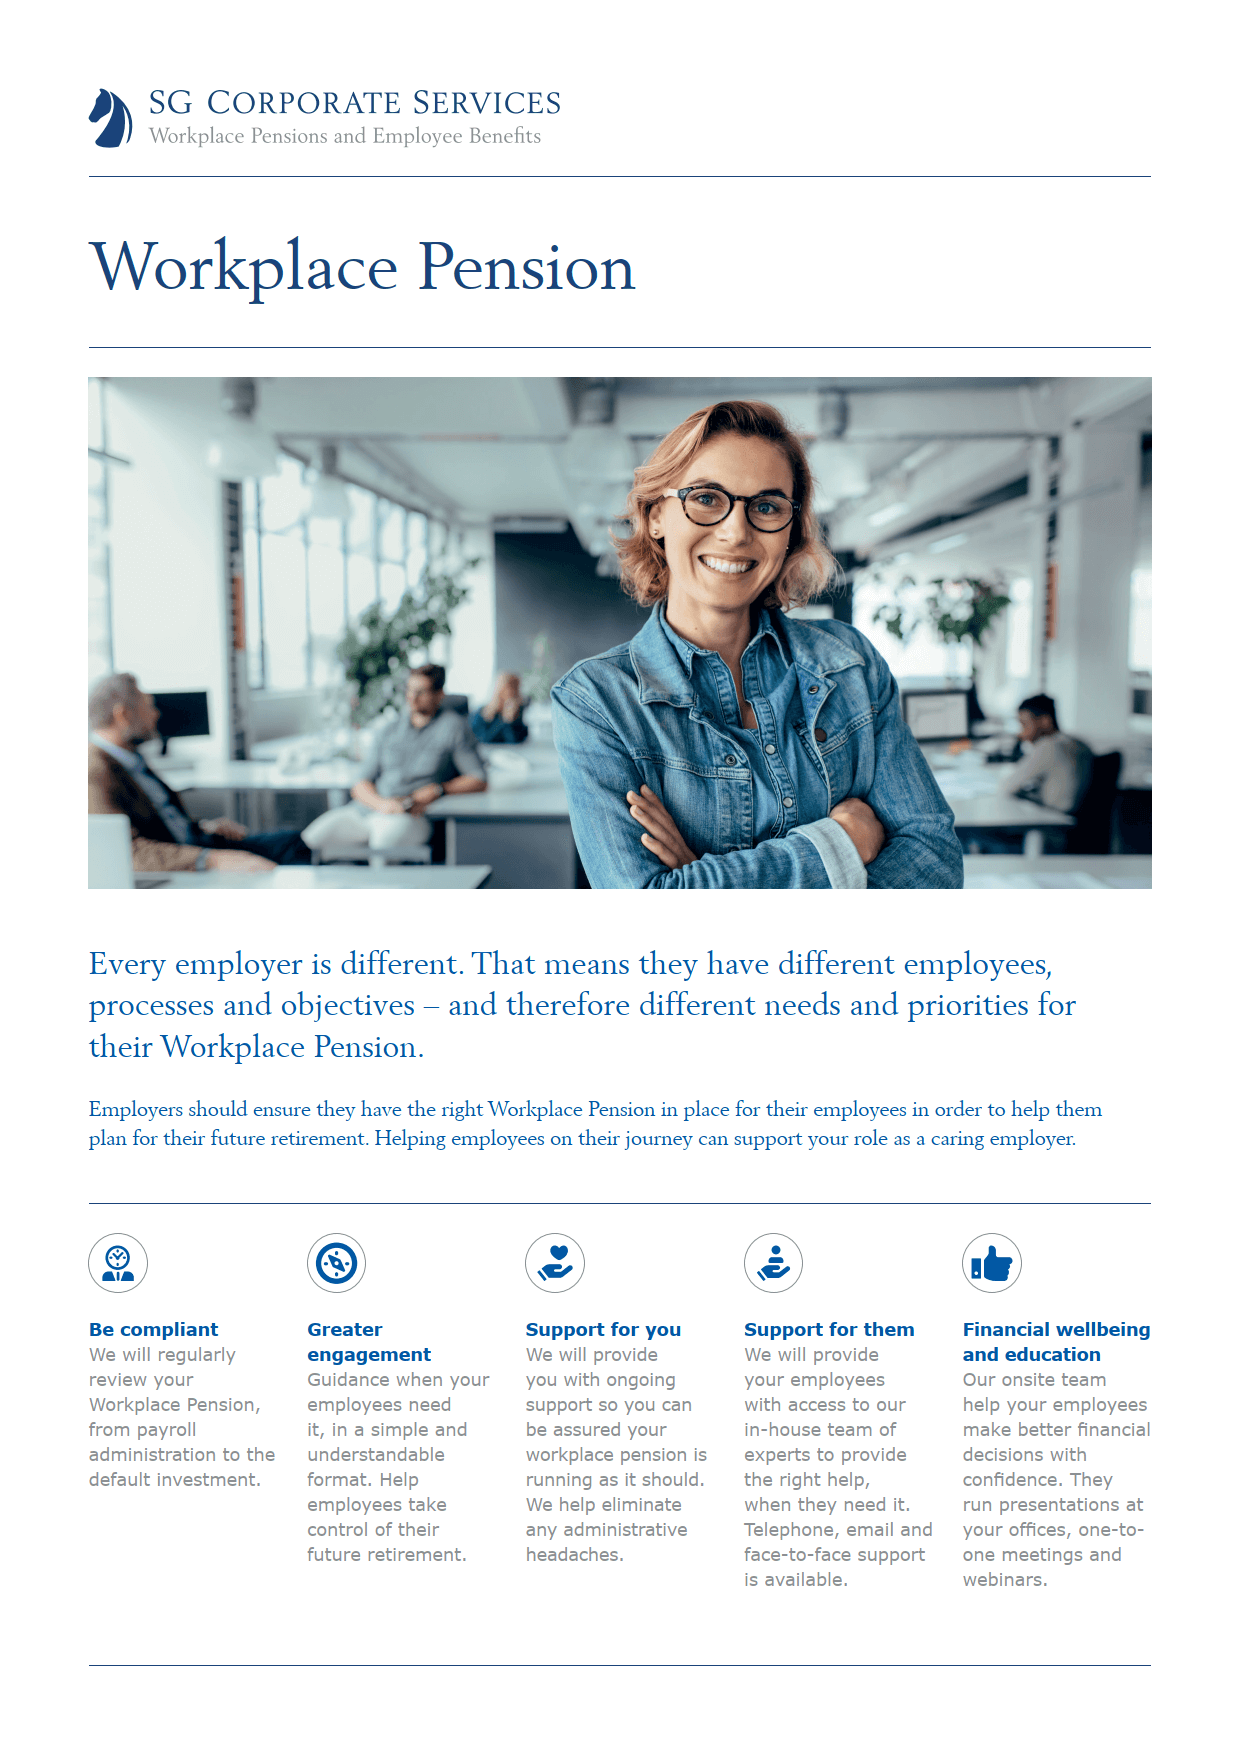 Product Guide - Workplace Pension